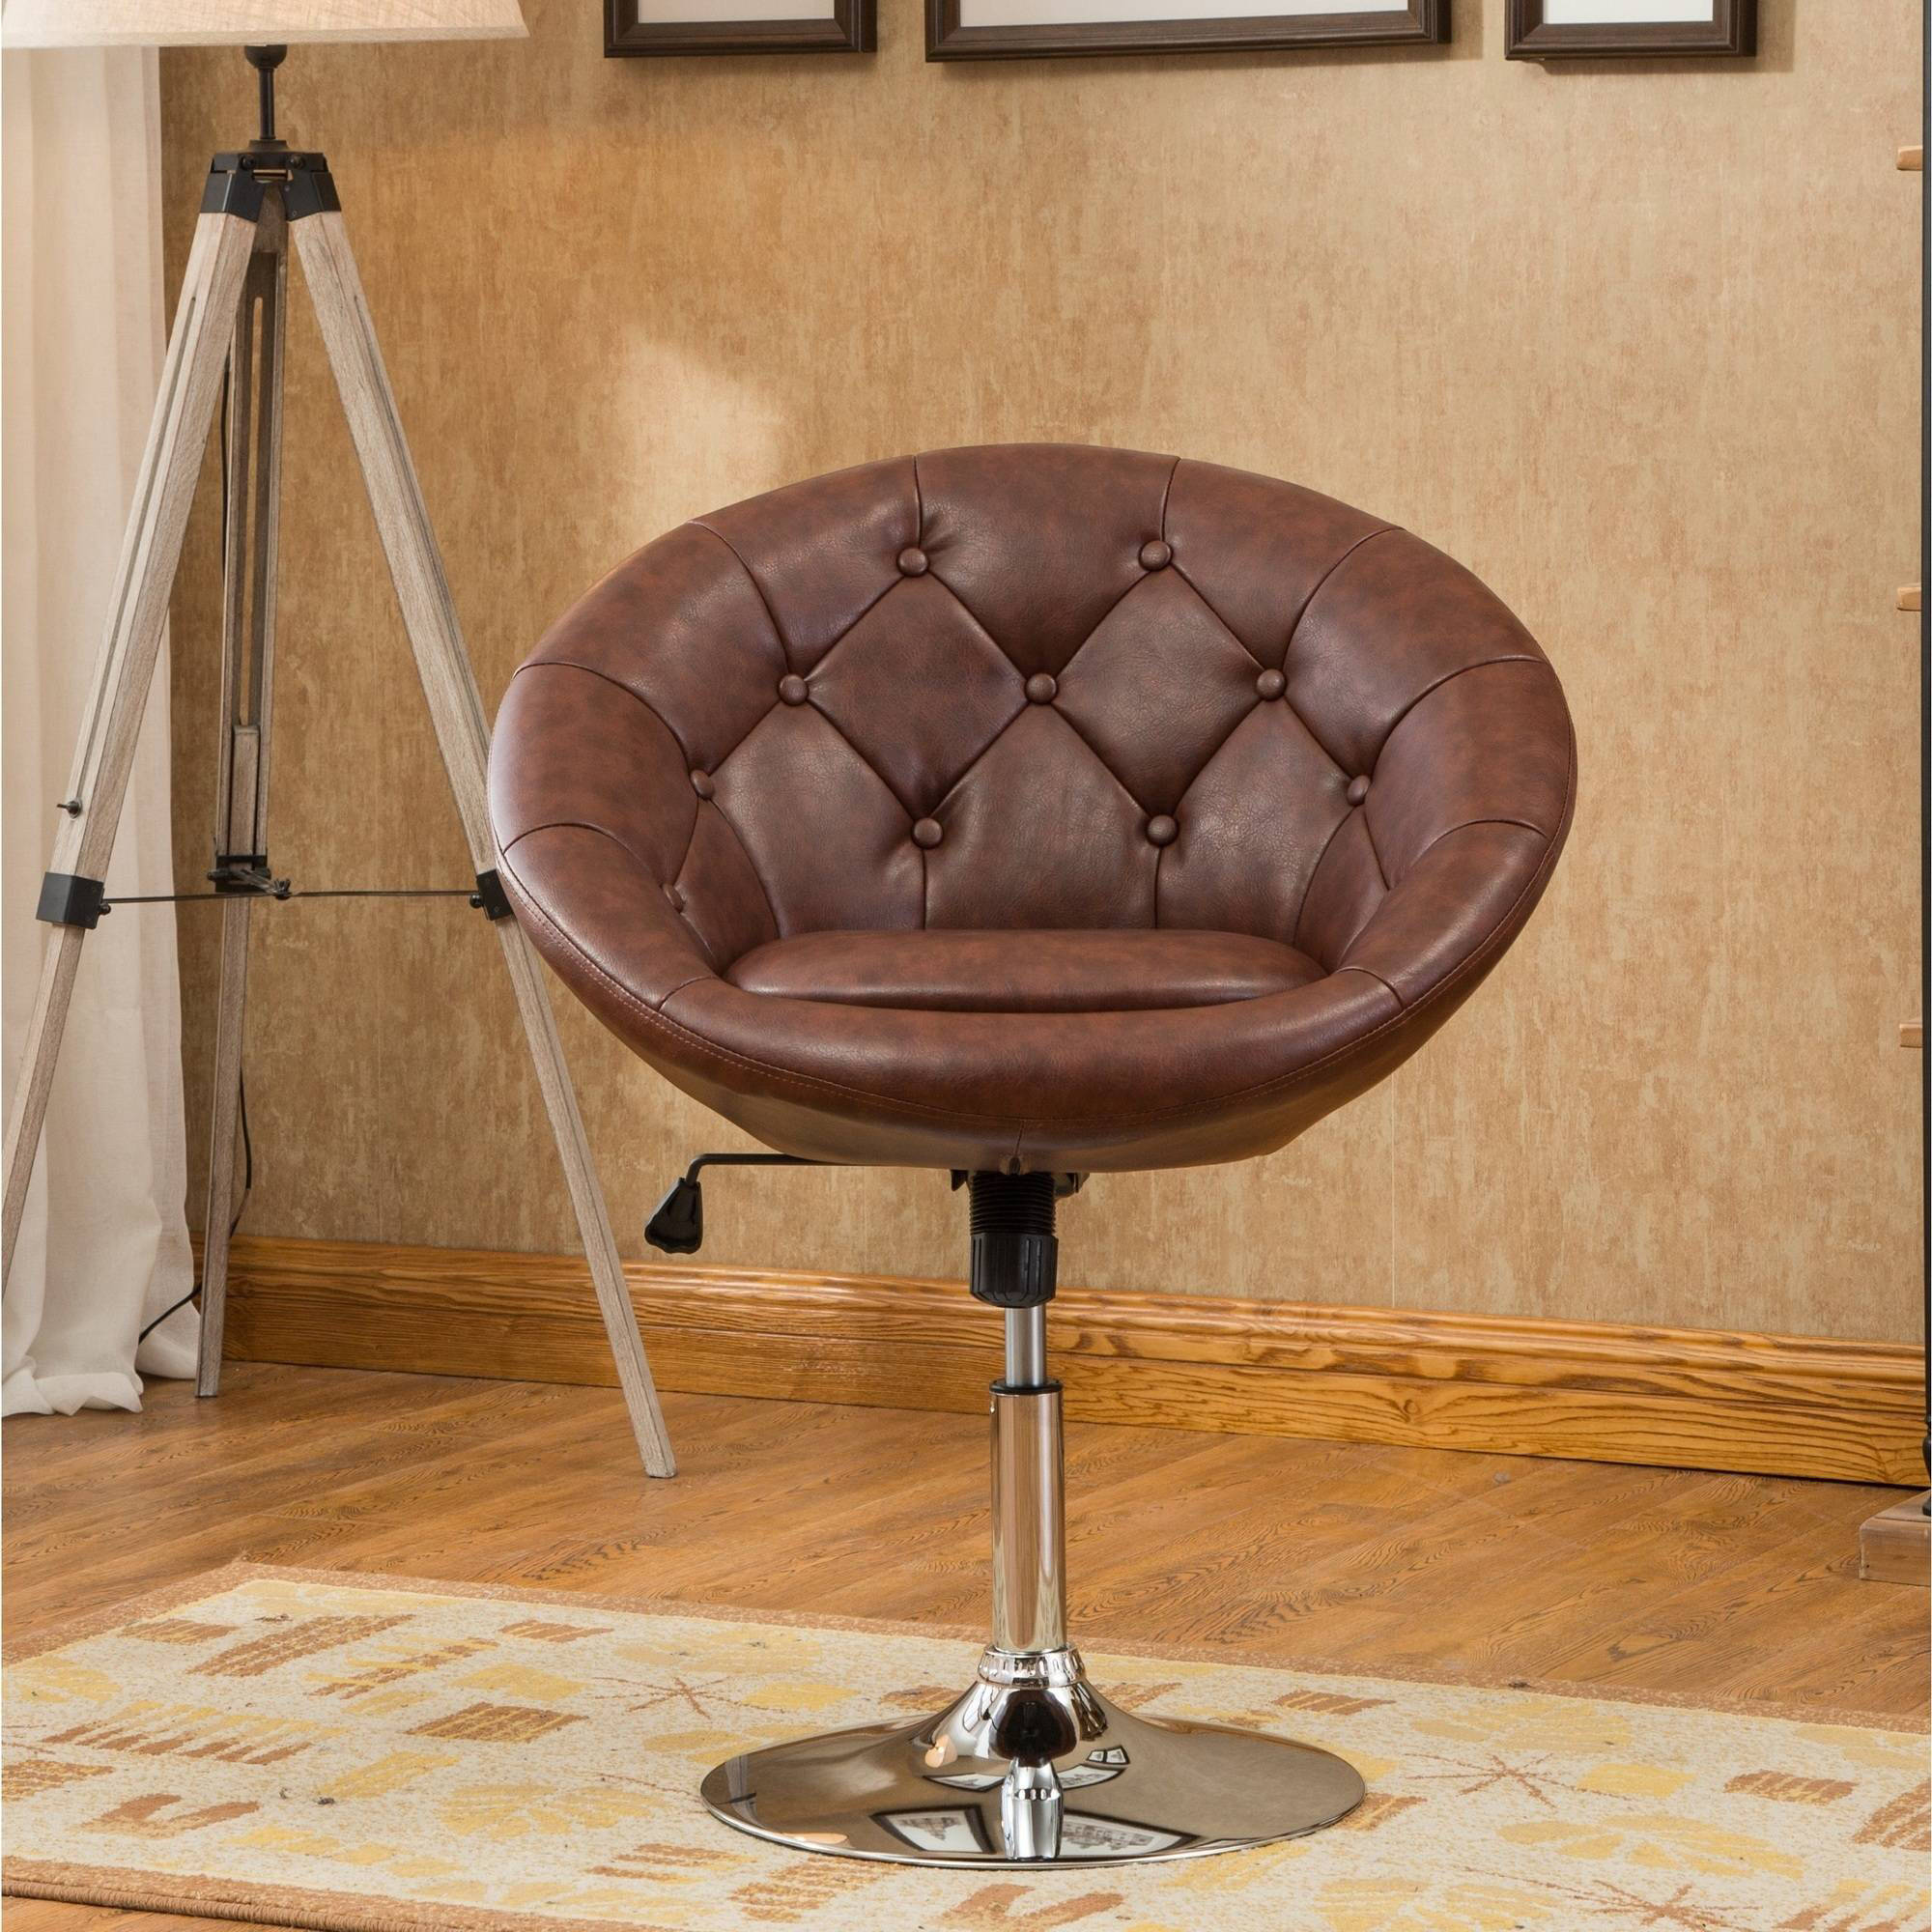 Roundhill Noas Contemporary Round Tufted Back Tilt Swiviel Accent Chair, Multiple Colors Available by Roundhill